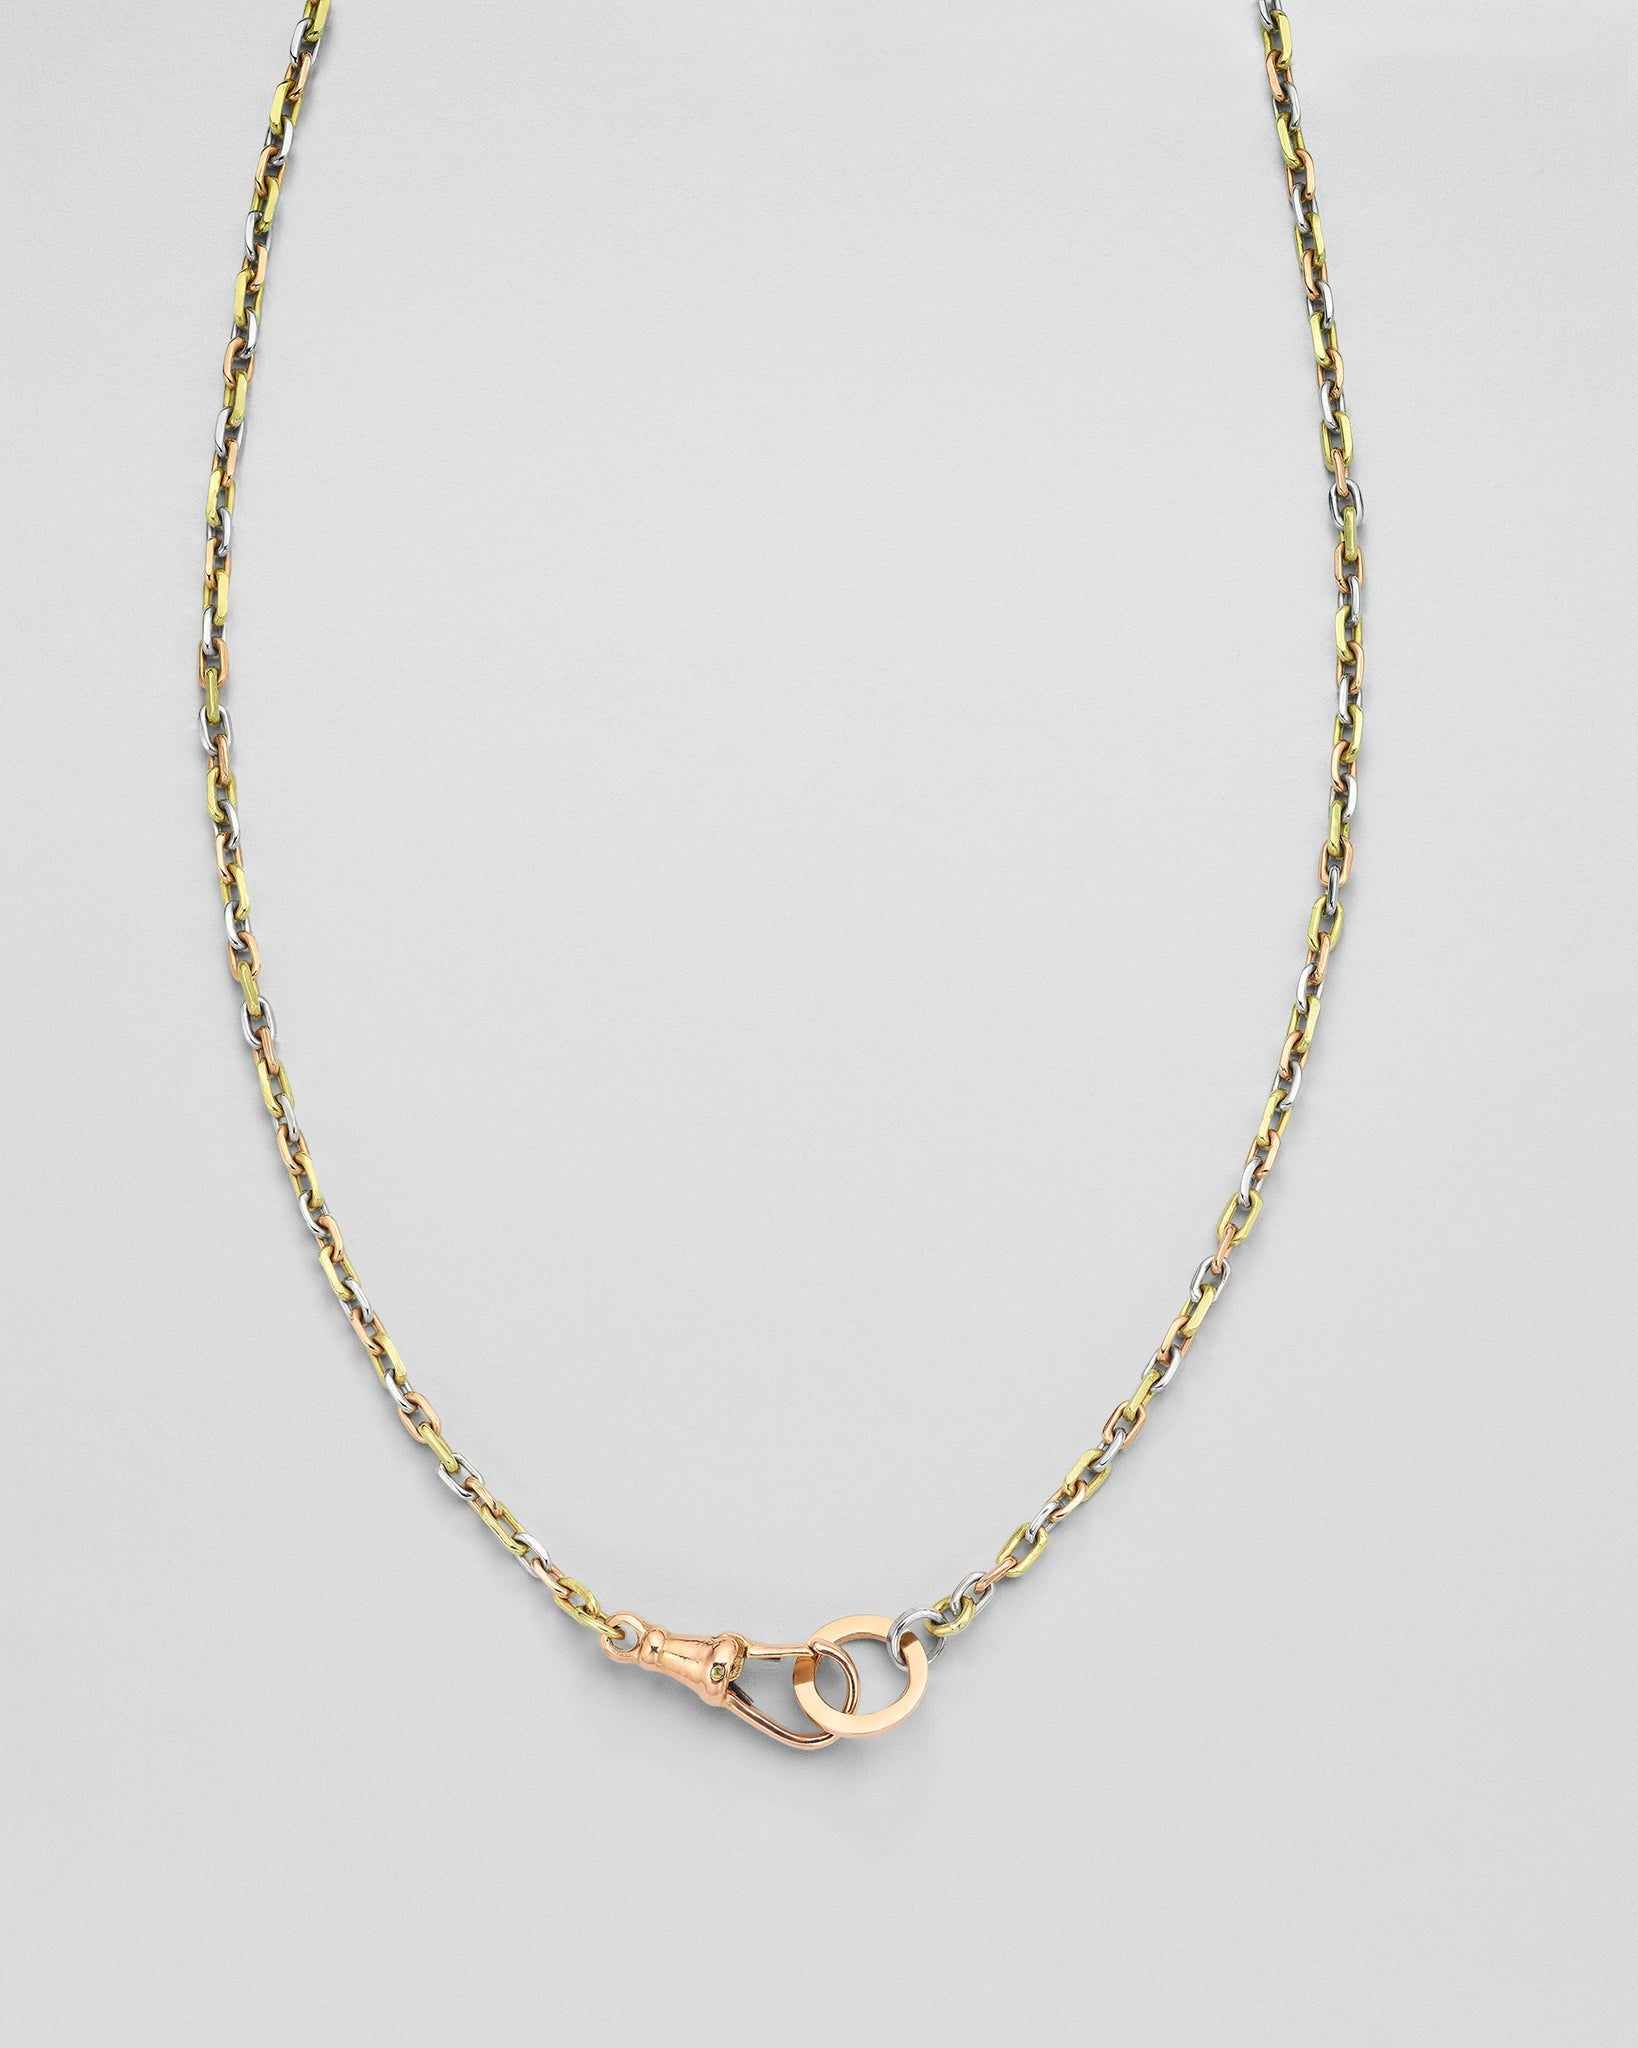 Tri-Color Petite Cable Chain Necklace